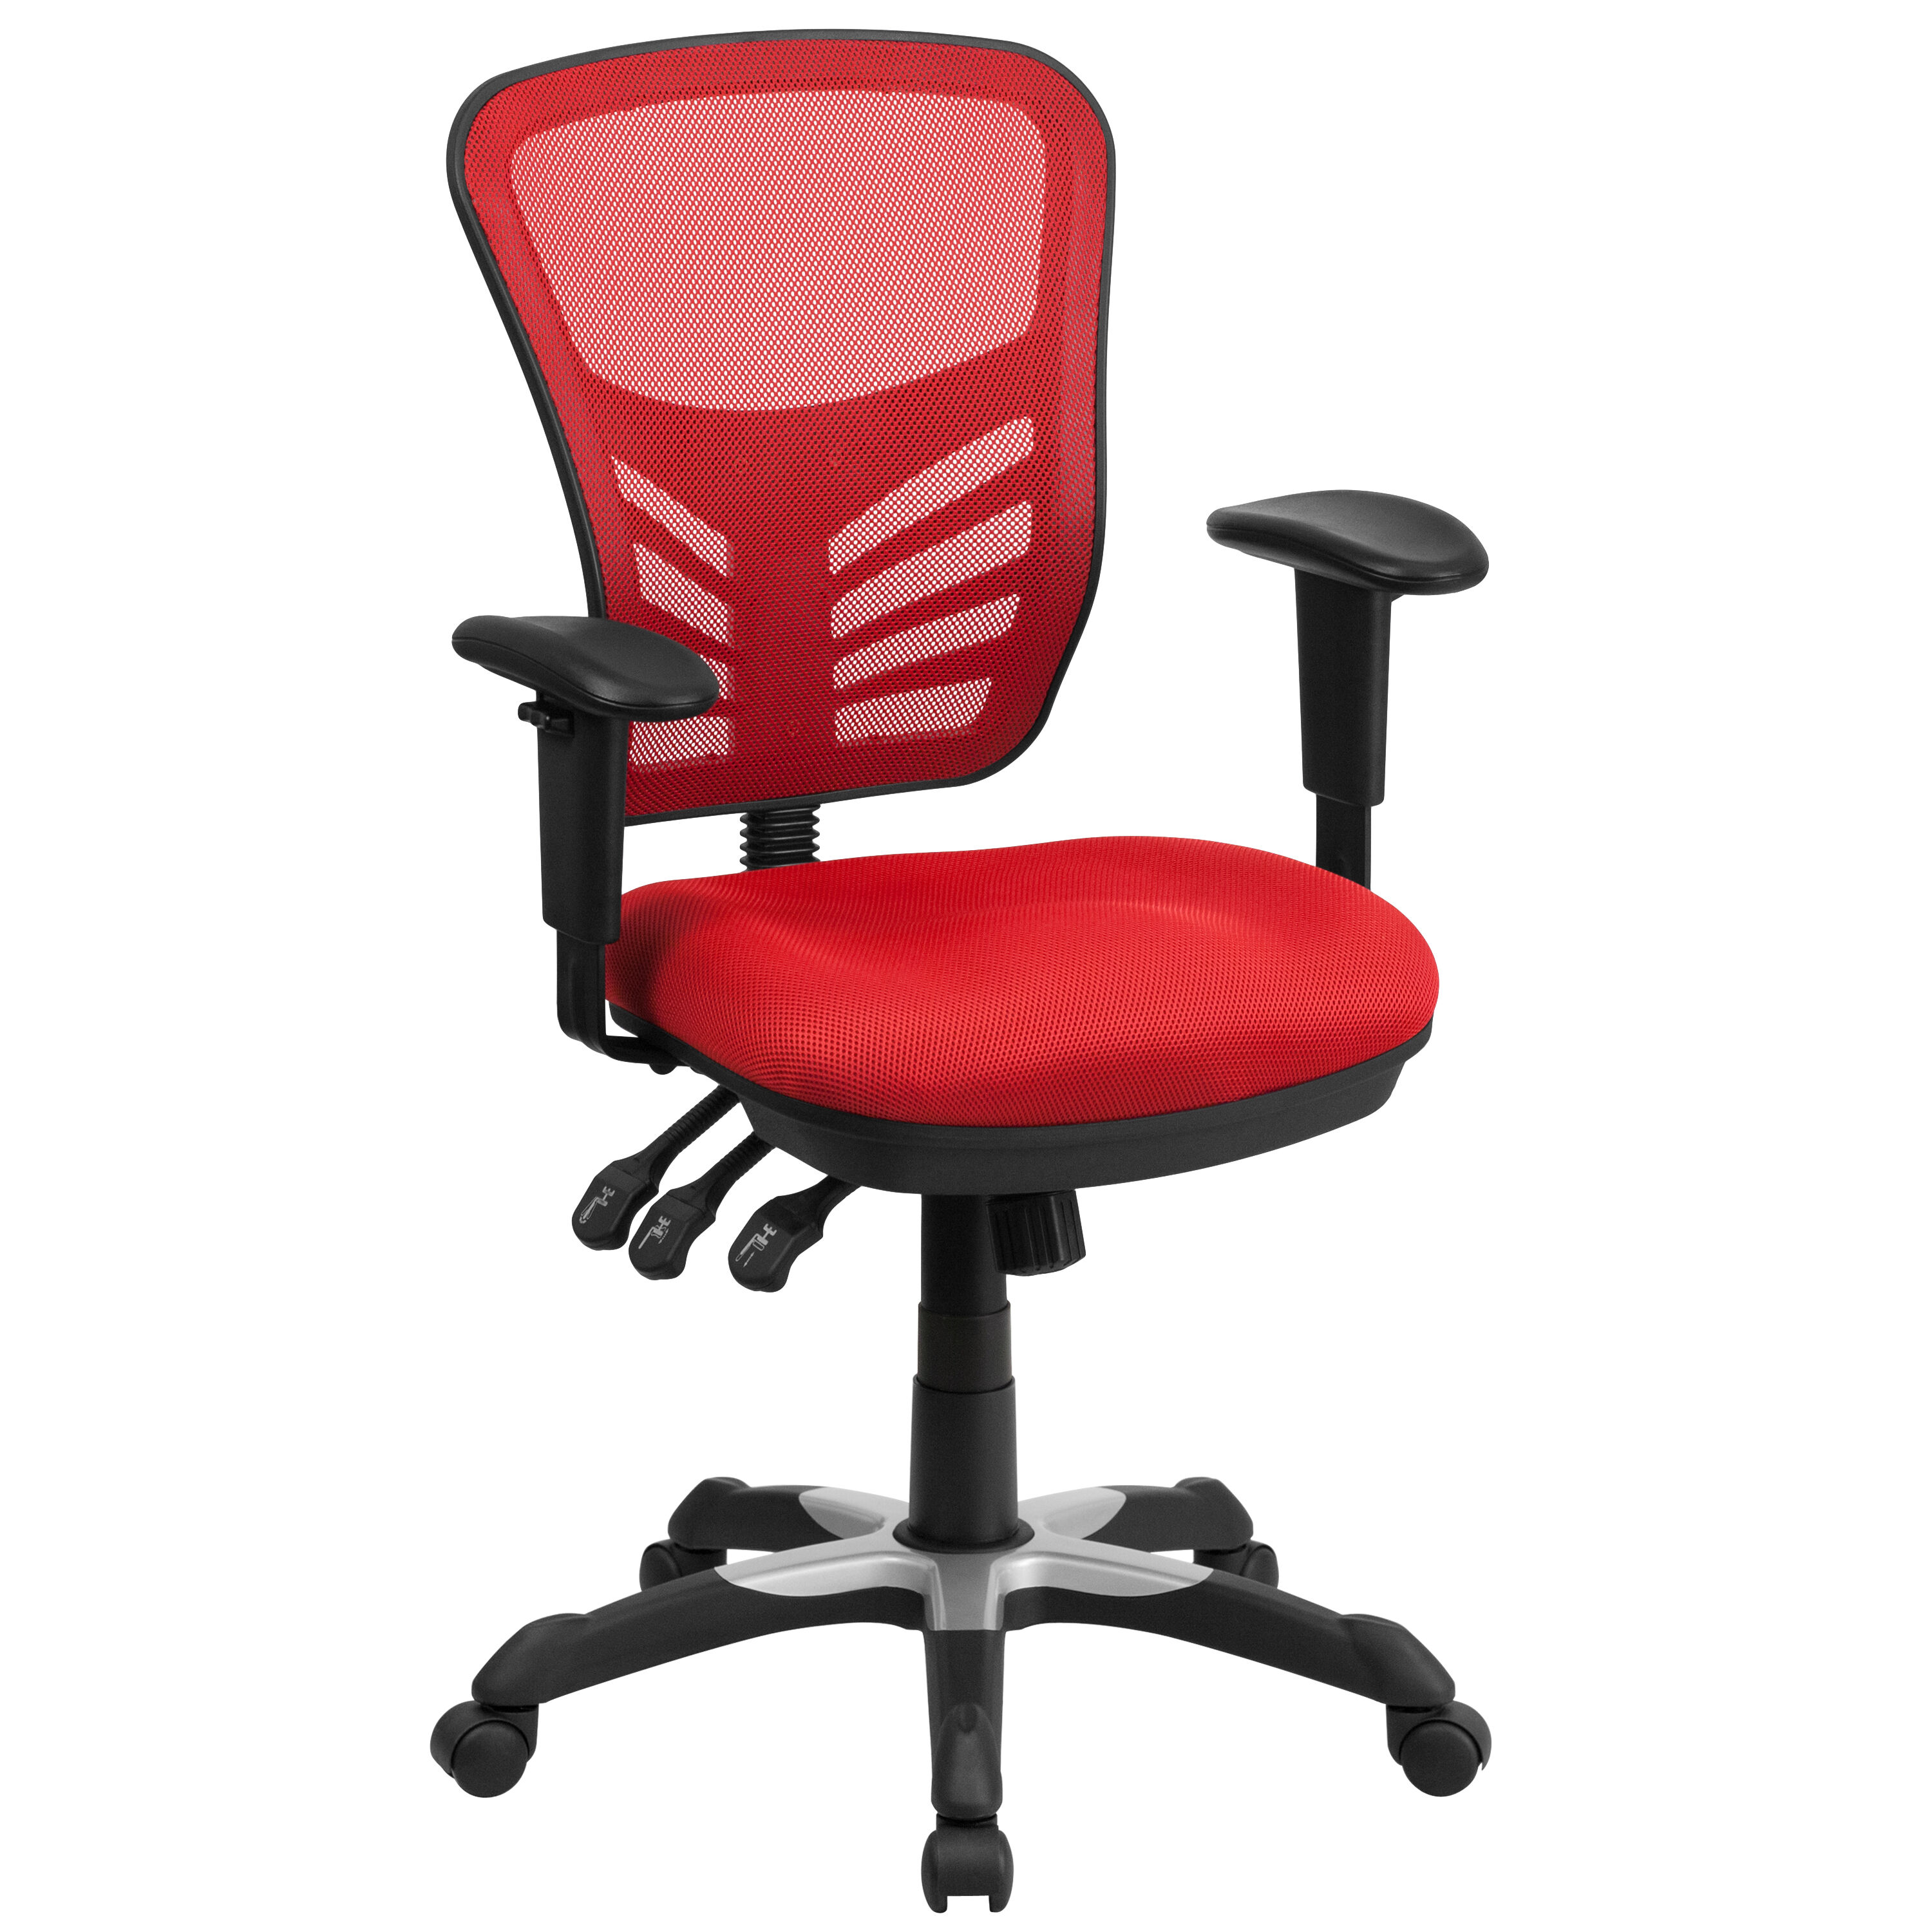 Office Chairs at low budget prices Bizchaircom